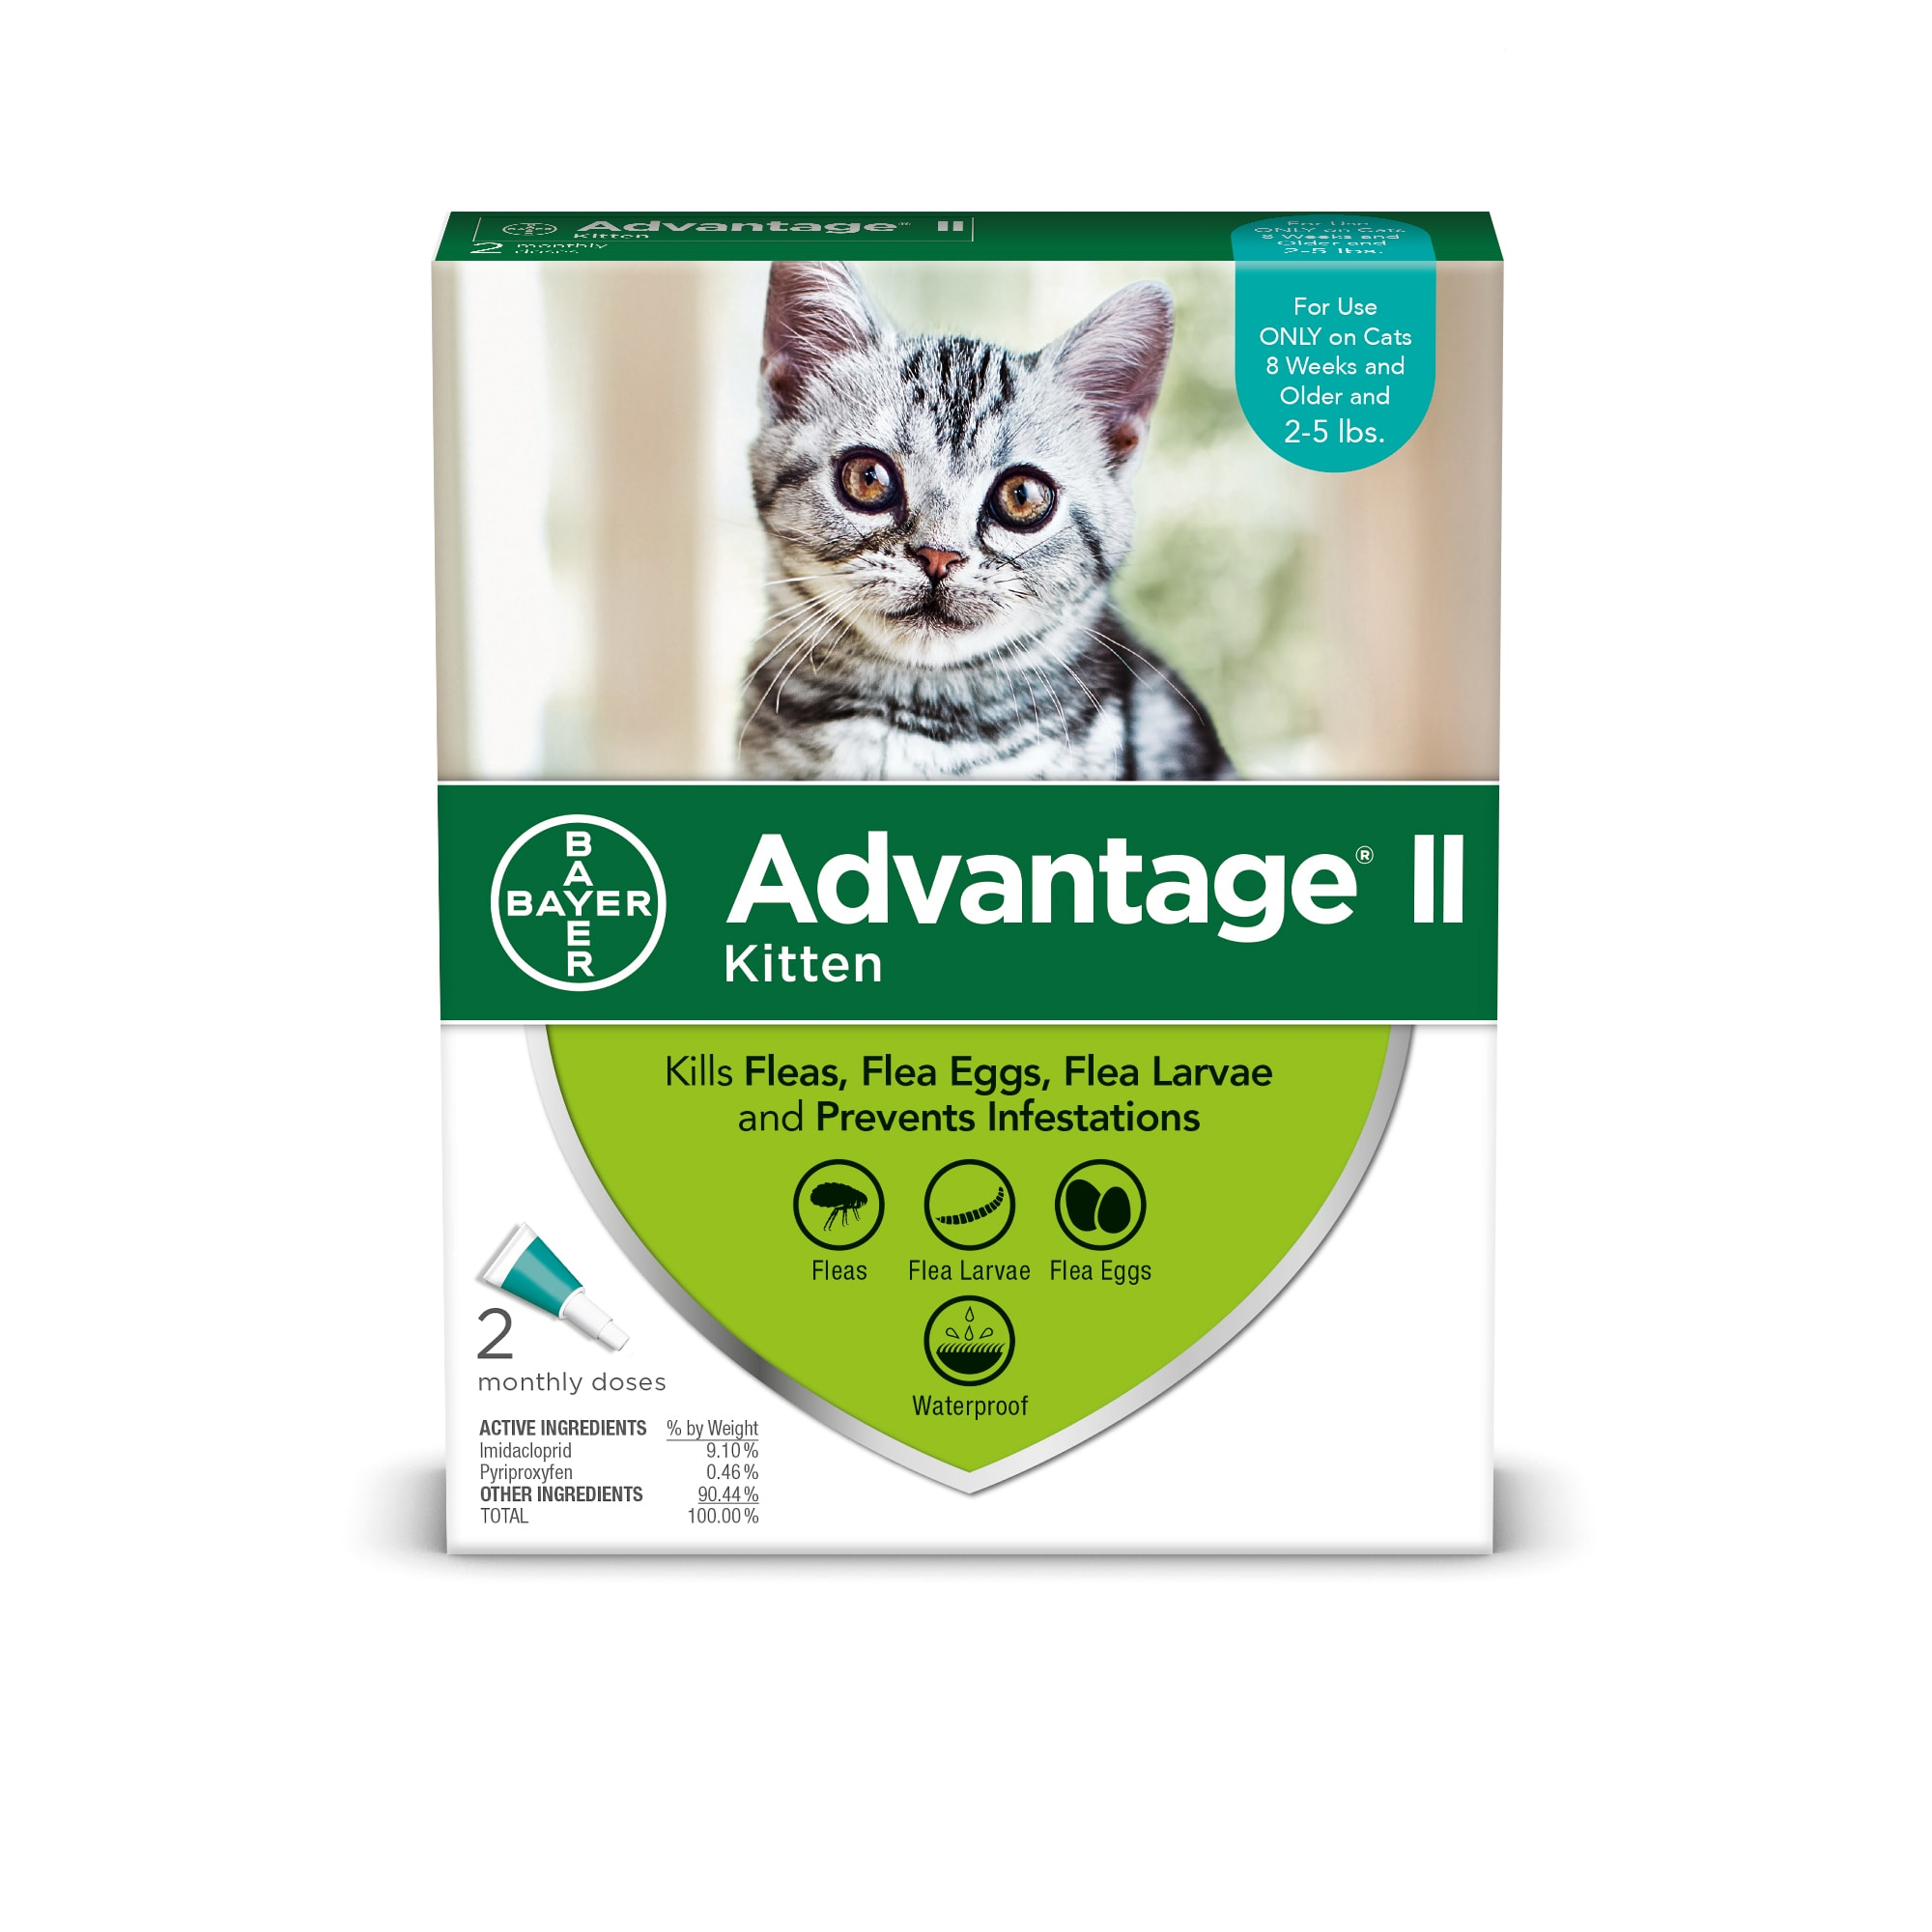 Advantage Ii Once A Month Cat Kitten Topical Flea Treatment 2 To 5 Lbs Petco